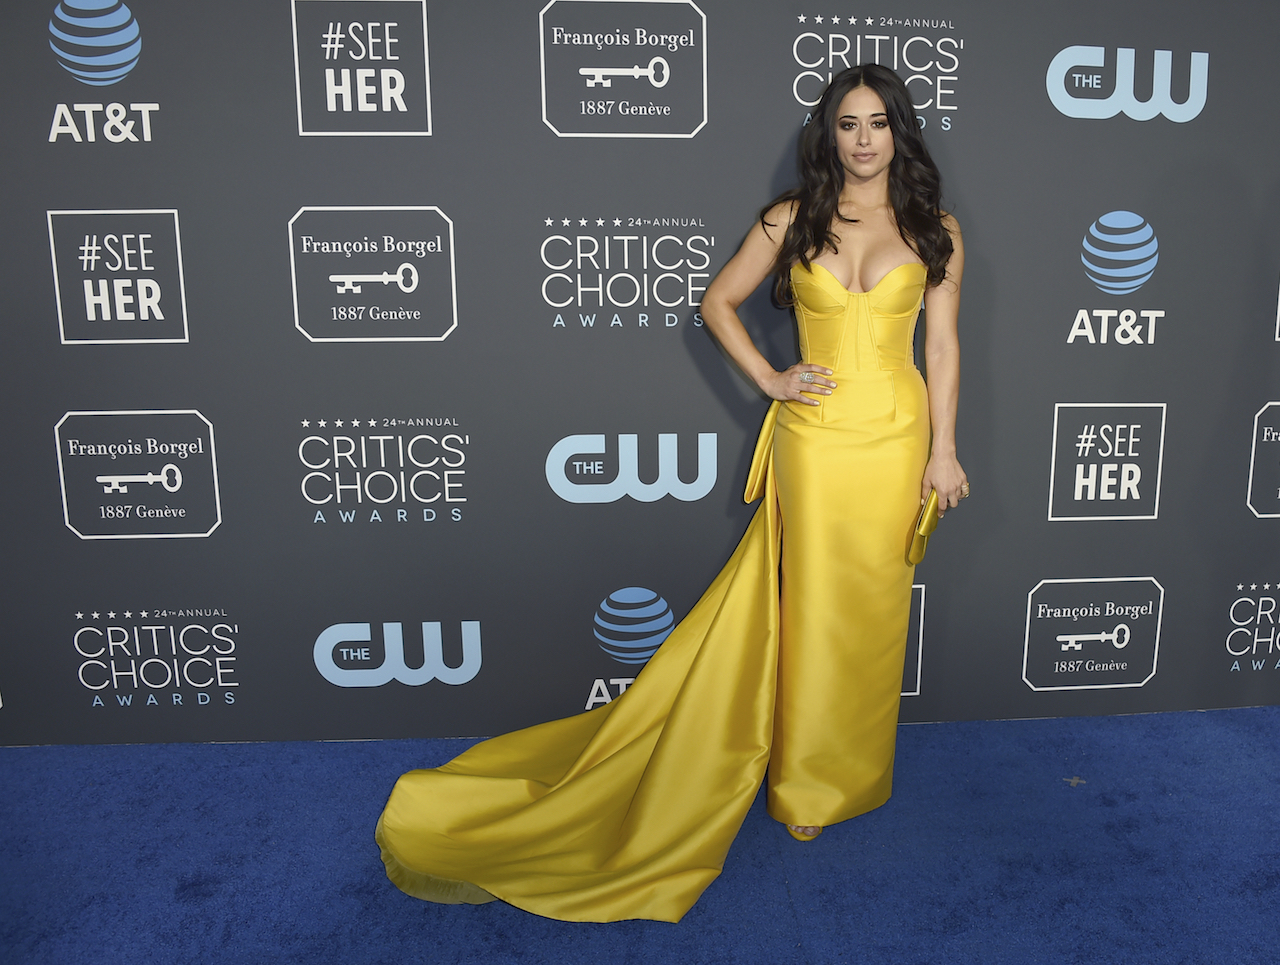 "<div class=""meta image-caption""><div class=""origin-logo origin-image ap""><span>AP</span></div><span class=""caption-text"">Jeanine Mason arrives at the 24th annual Critics' Choice Awards on Sunday, Jan. 13, 2019, at the Barker Hangar in Santa Monica, Calif. (Jordan Strauss/Invision/AP)</span></div>"